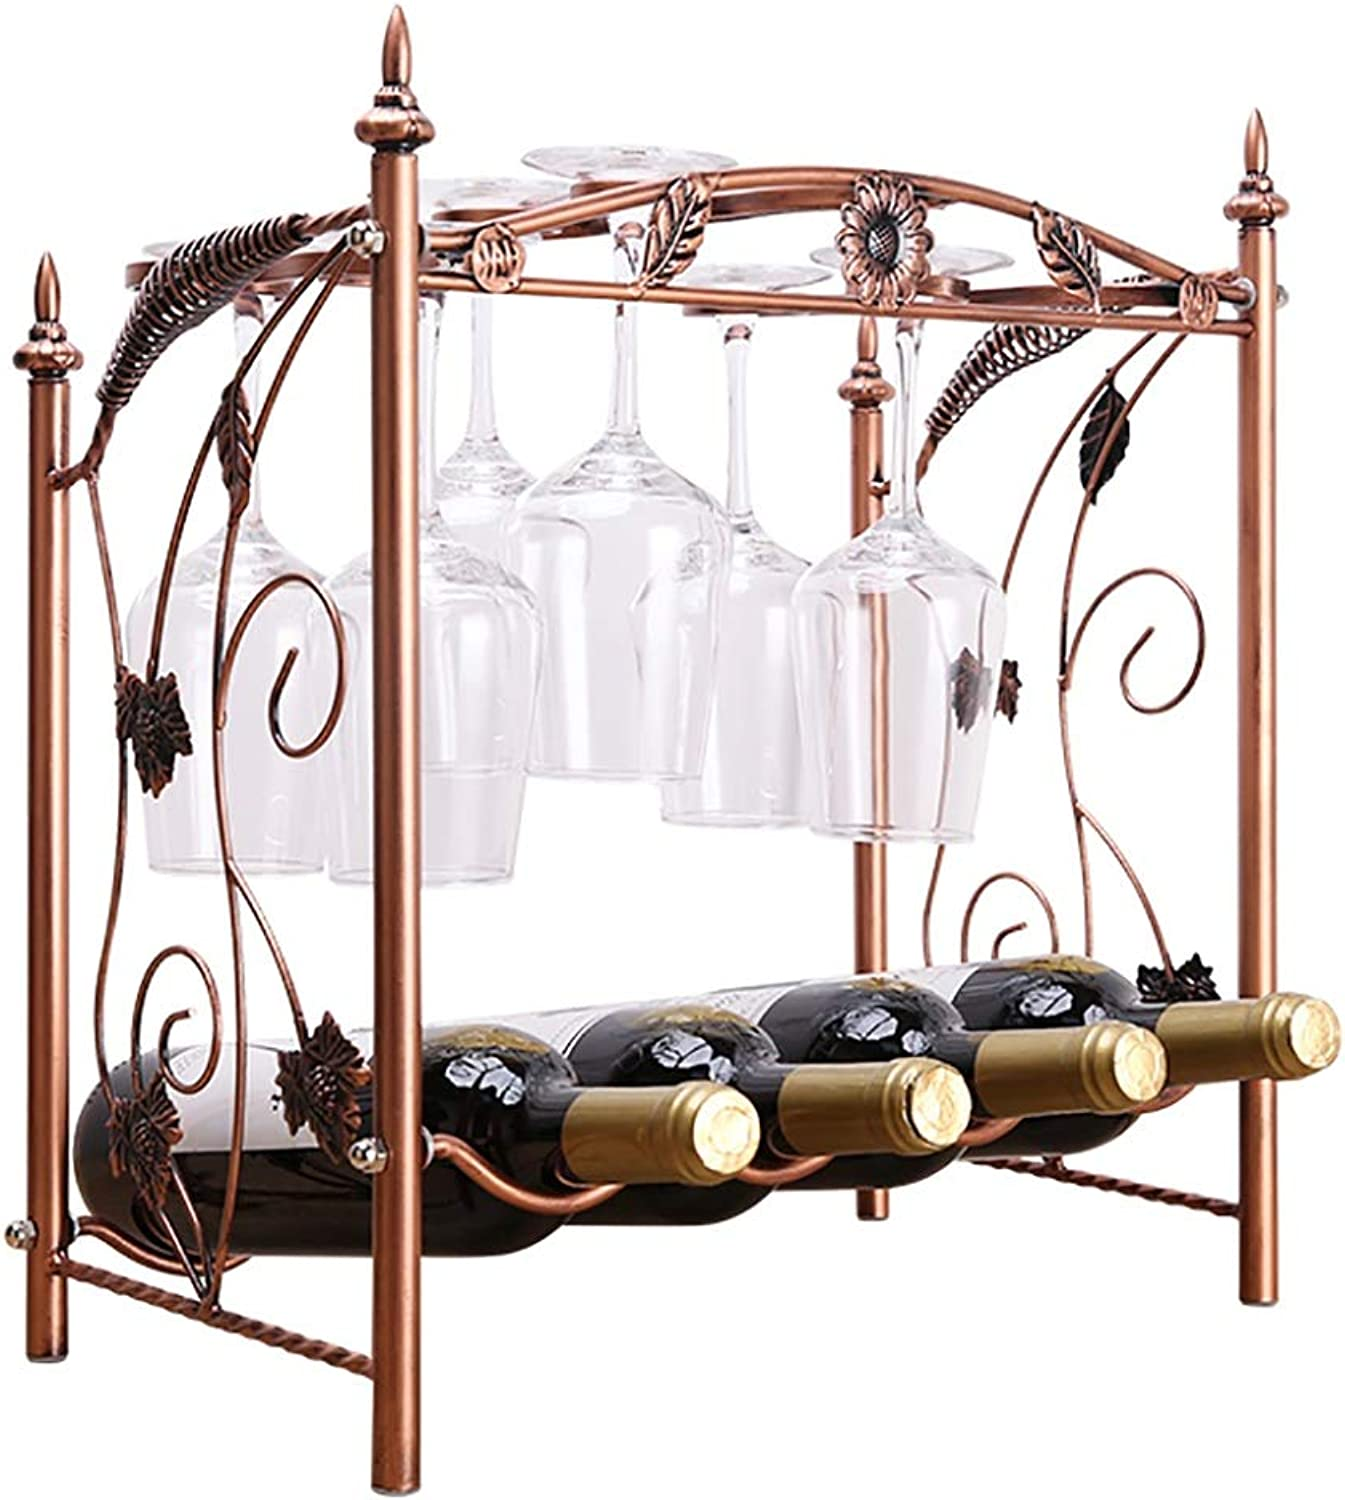 BTPDIAN Double Wine Rack Wine Glass Rack Removable and Versatile 2 Word